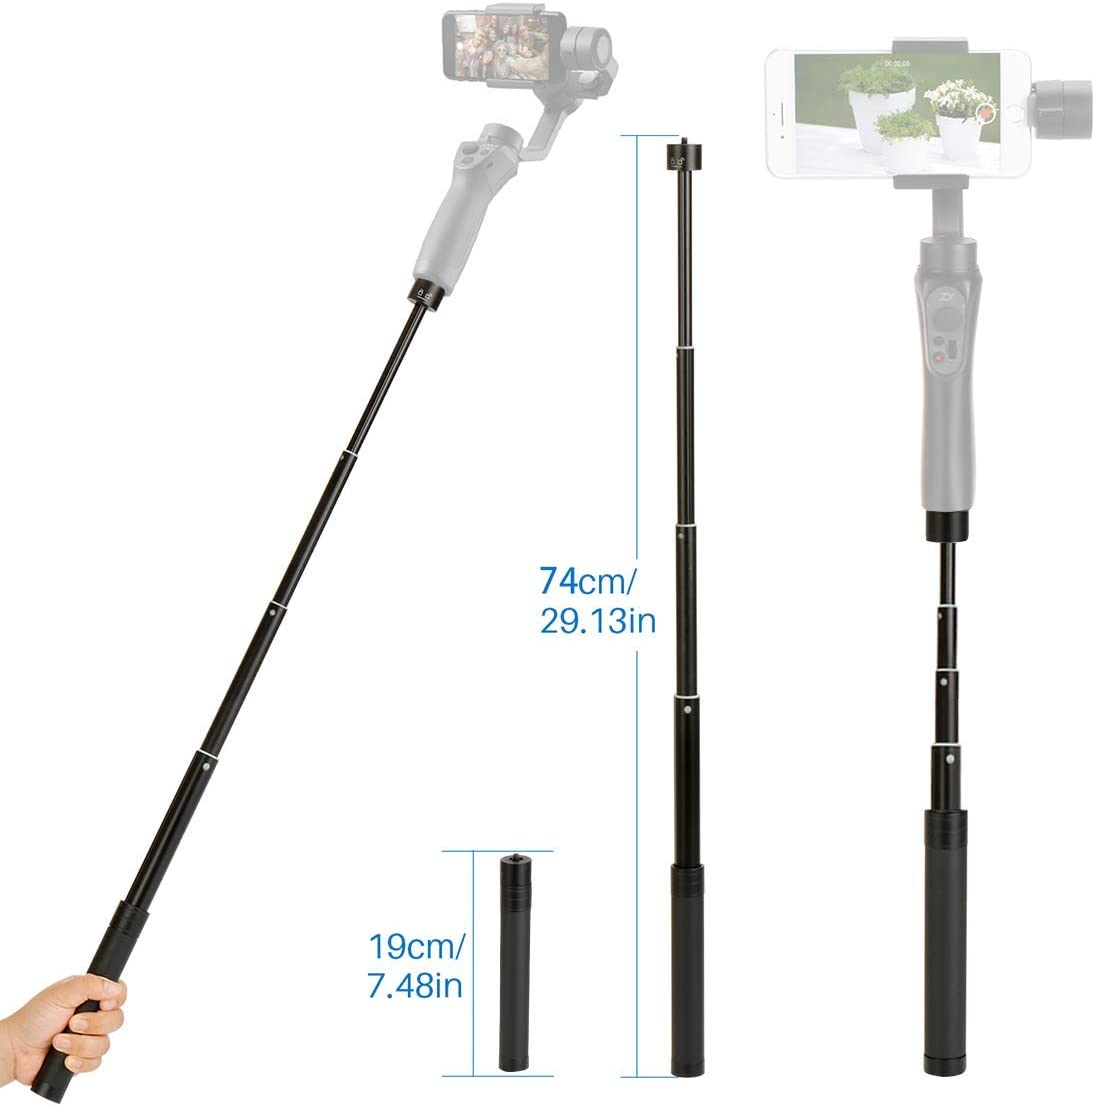 "Extension Rod for Gimbal - YILIWIT 29 inch Adjustable Selfie Stick Compatible with Gimbal Stabilizer DJI Osmo Mobile 3 2/Feiyu/Zhiyun Smooth Q & 4 and All Gimbles with 1/4"" Thread Handheld Pole"